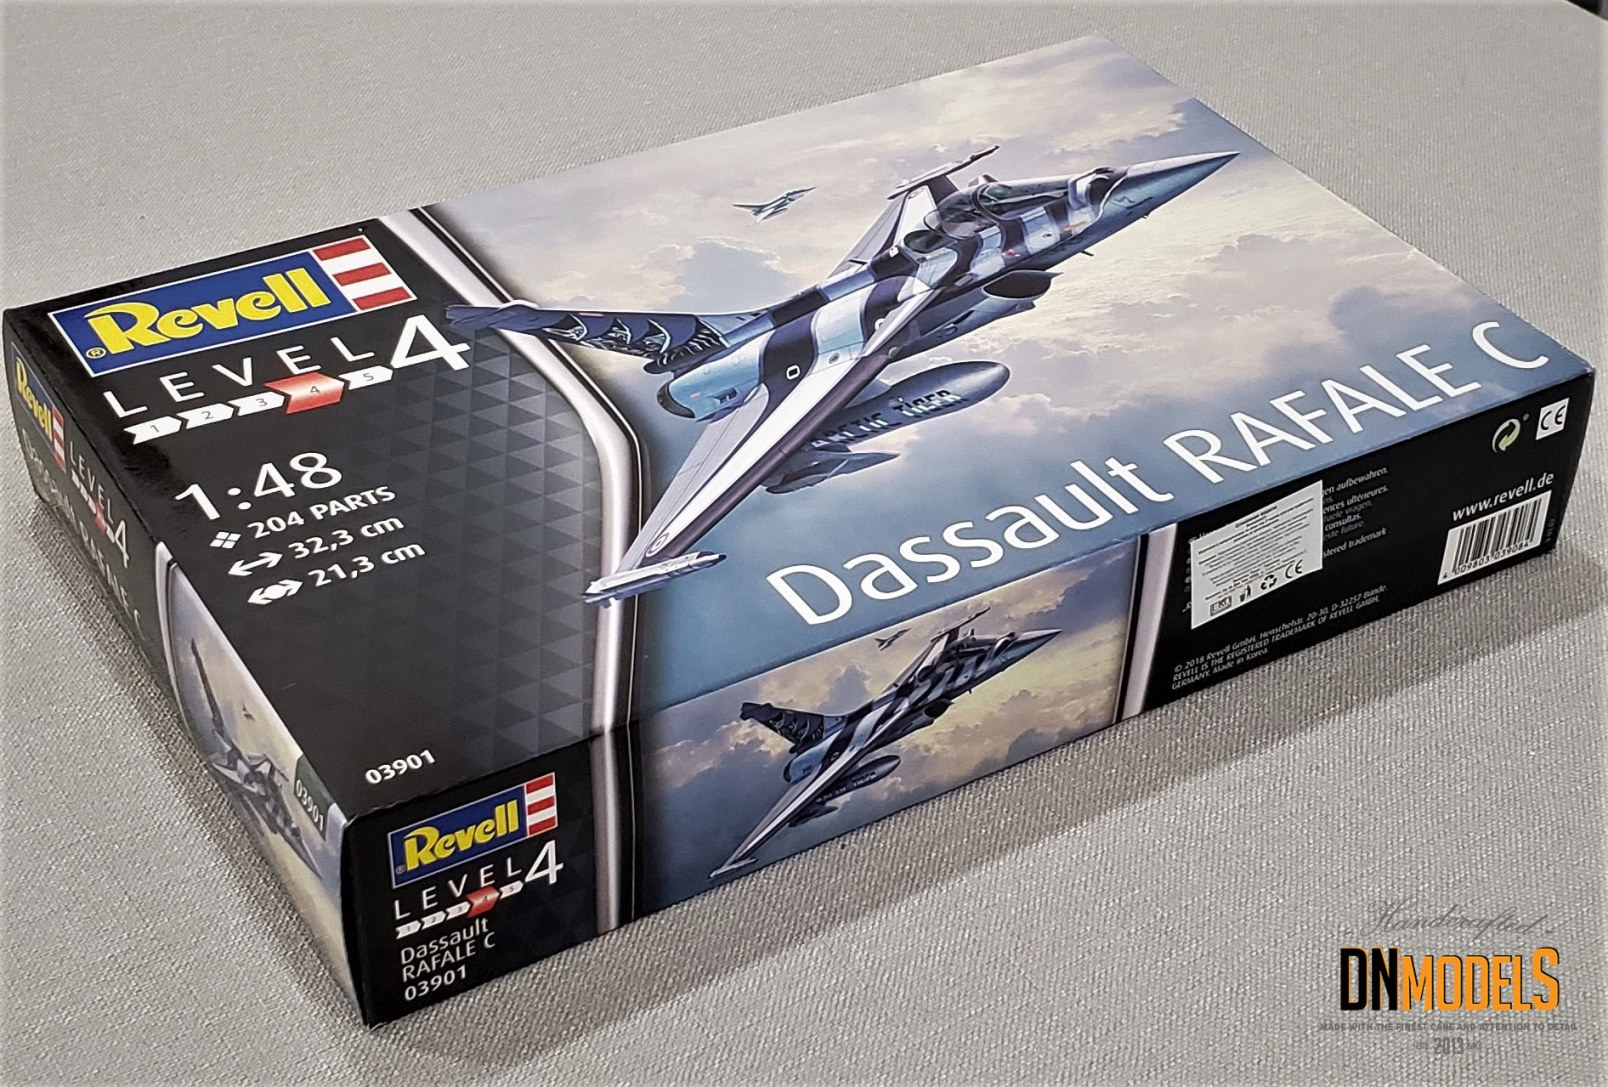 revell rafale honest review dn models masks for scale models